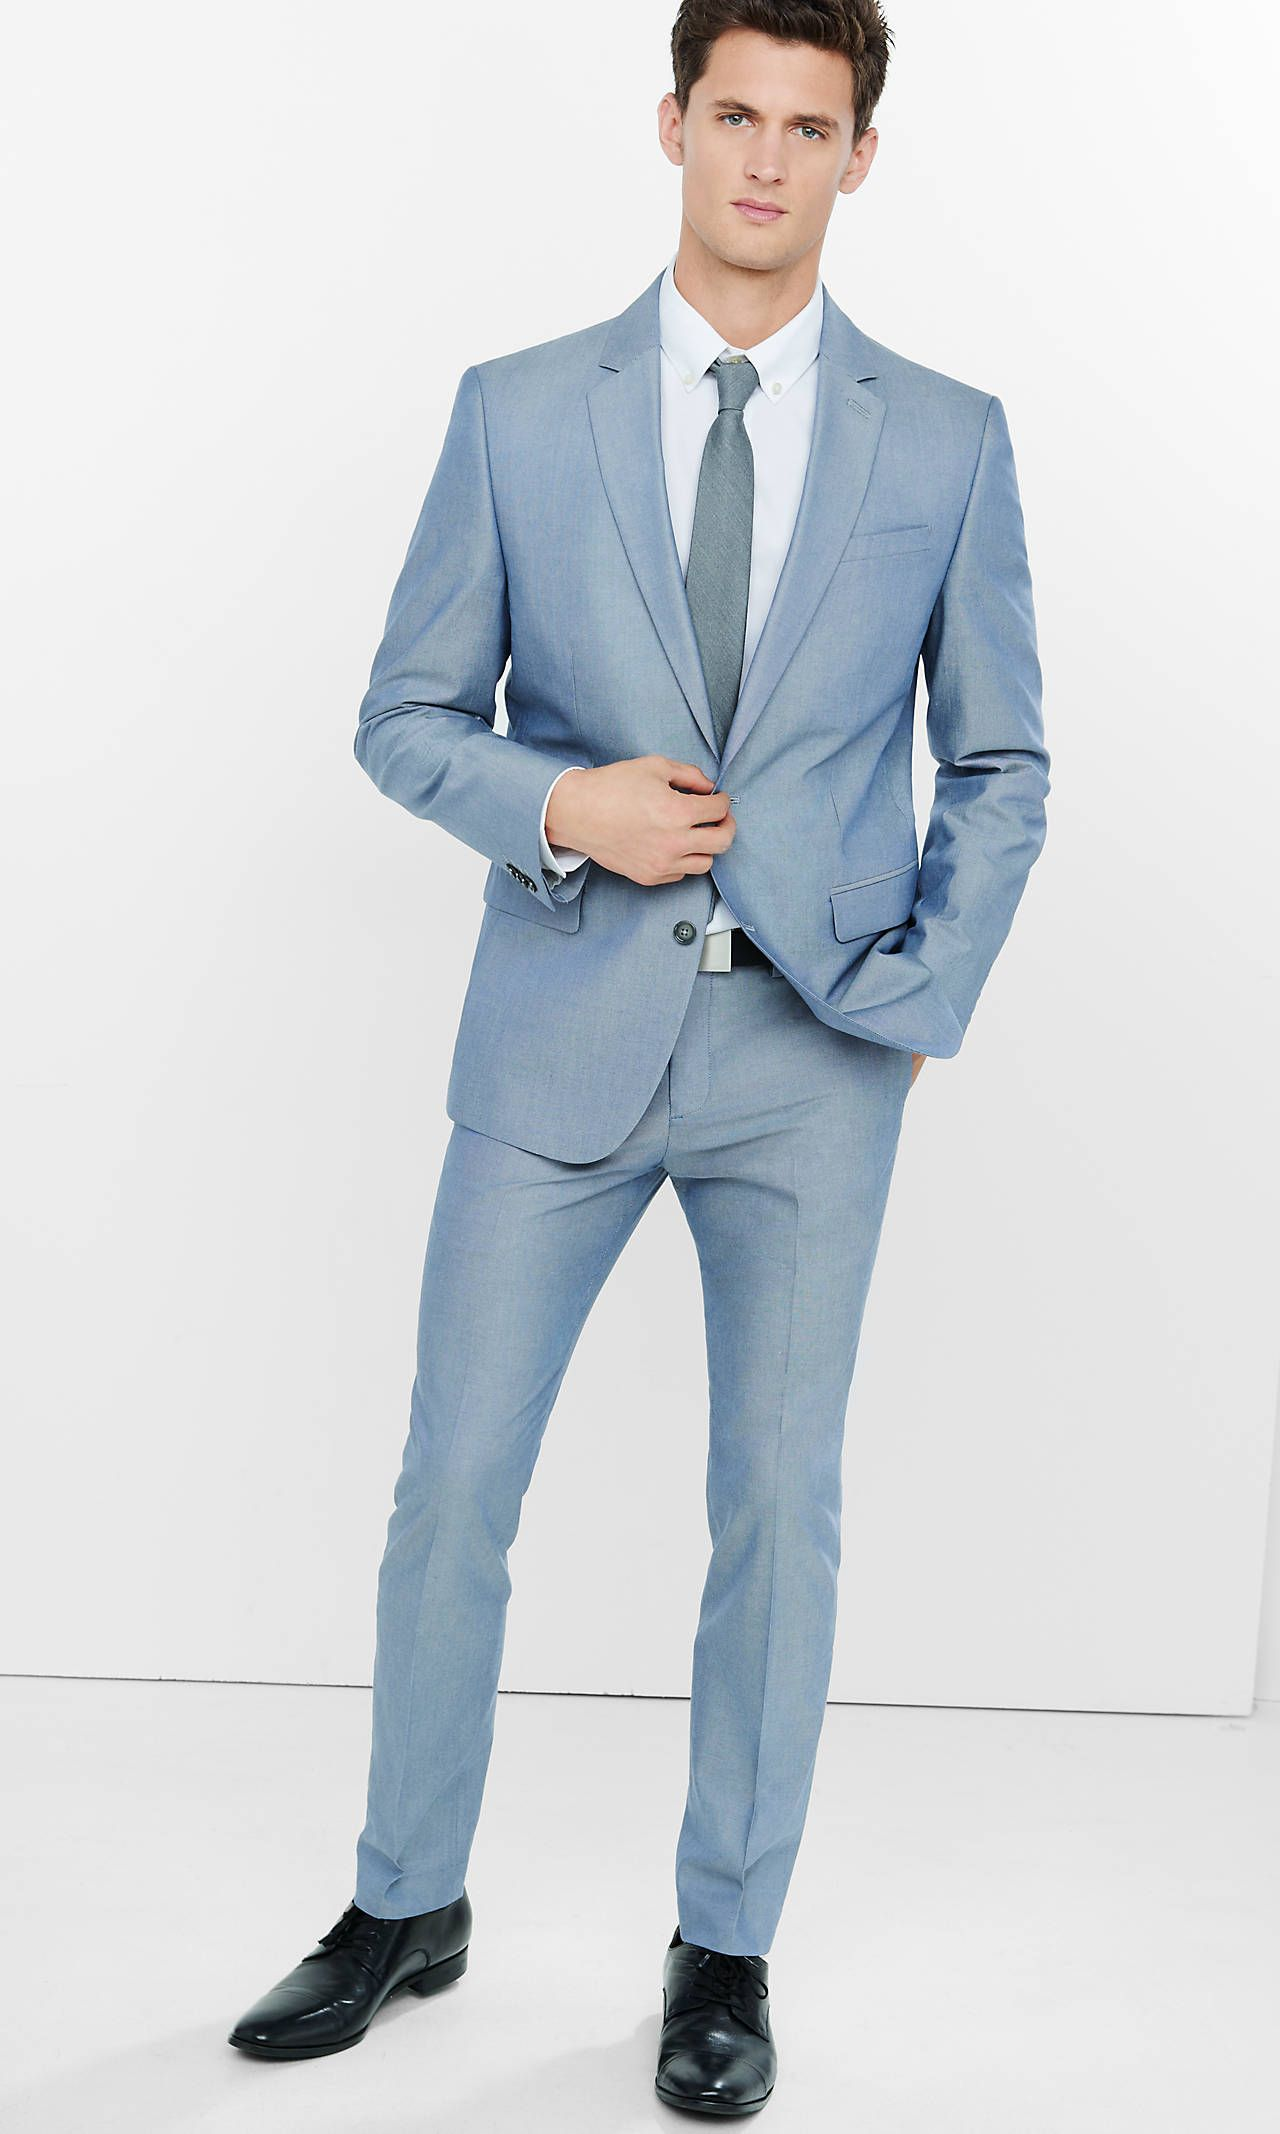 Skinny Innovator Oxford Blue Suit from EXPRESS | Clothes S/S 2016 ...